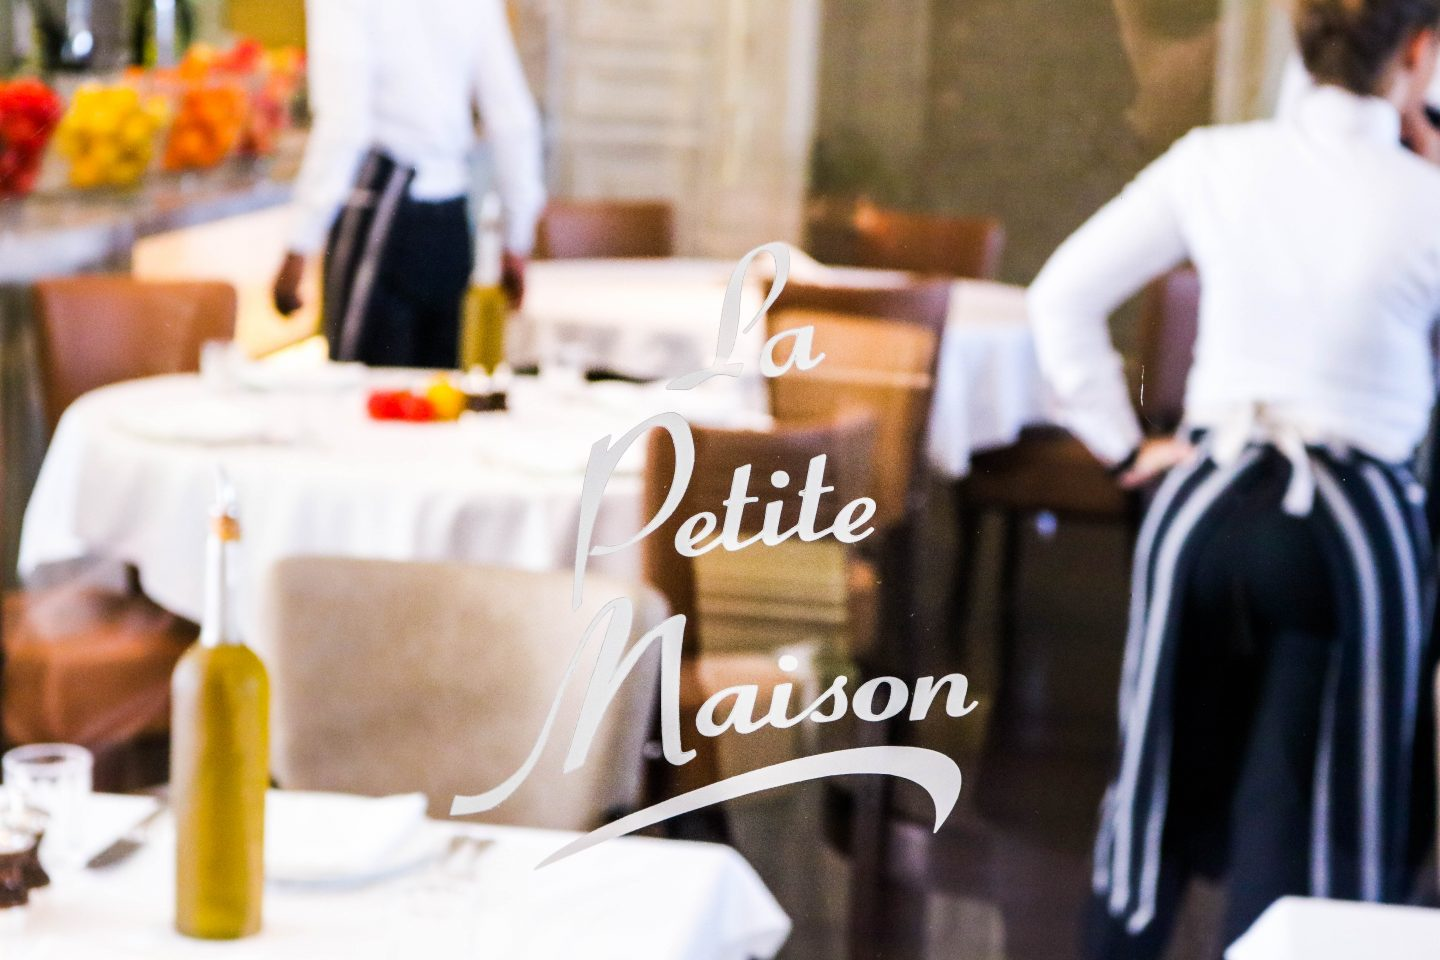 La Petite Maison - glass window - best restaurant for lunch in Dubai on the Lifestyle Enthusiast blog